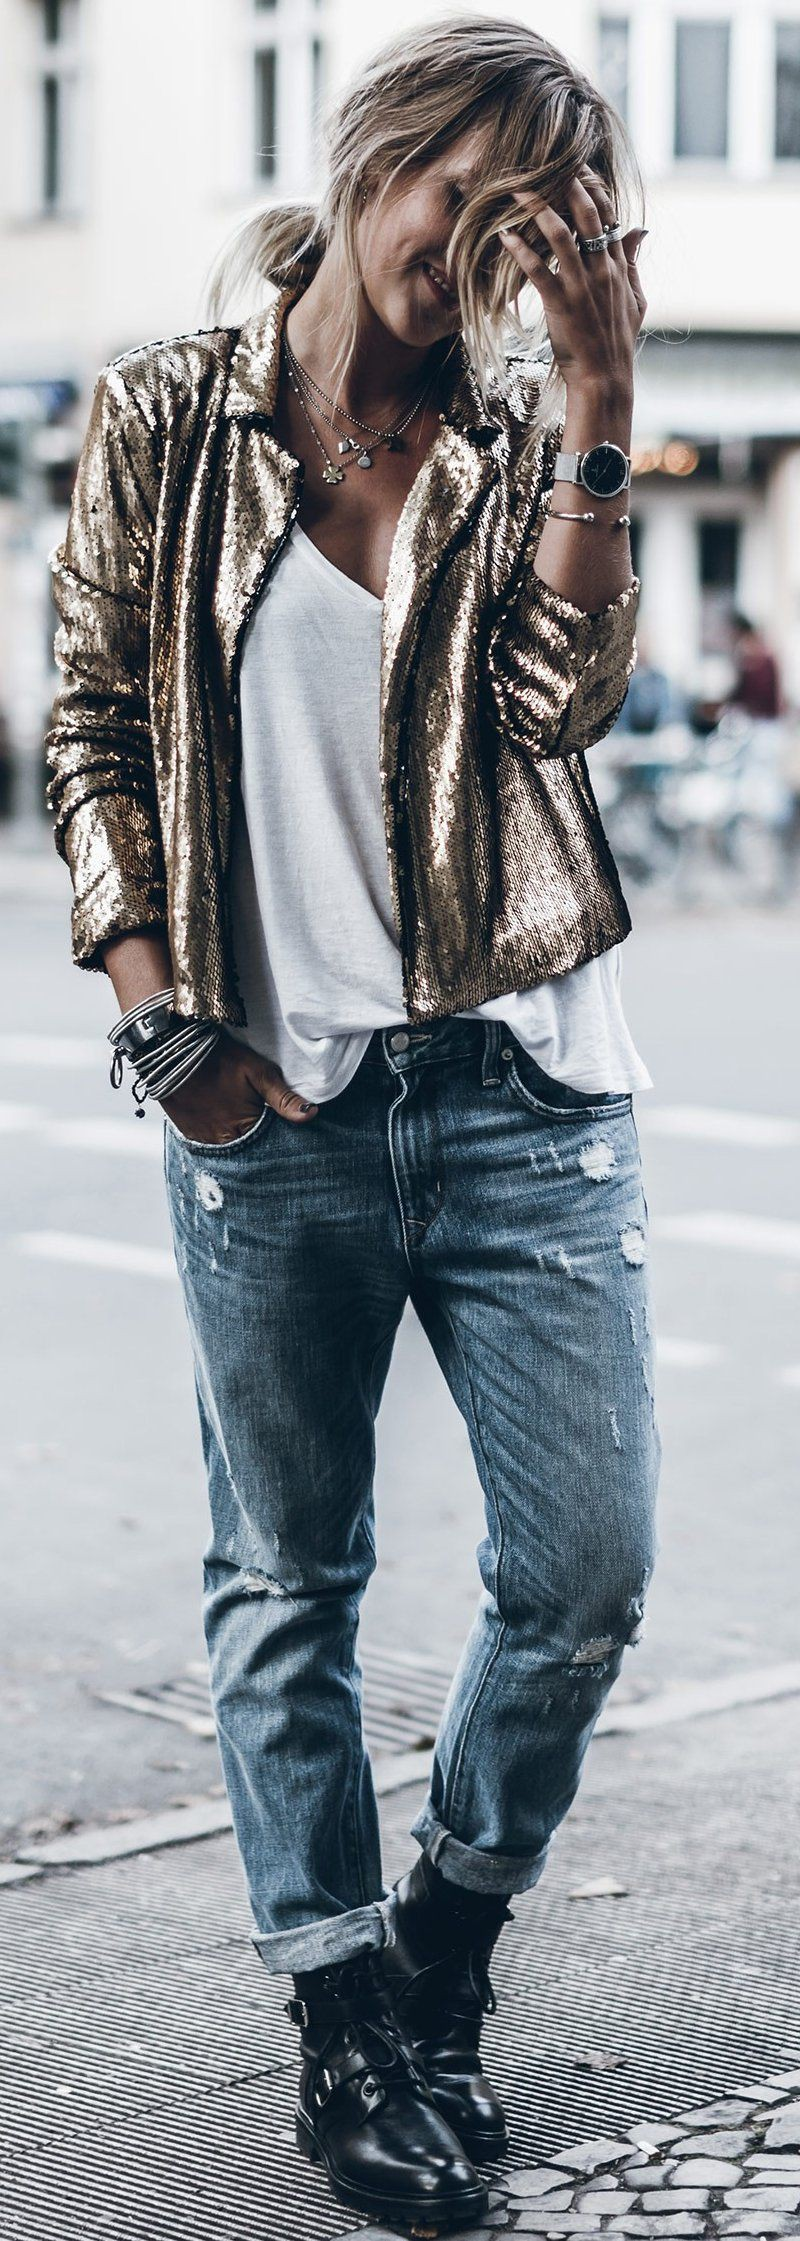 Colour outfit with trousers, leather, jacket